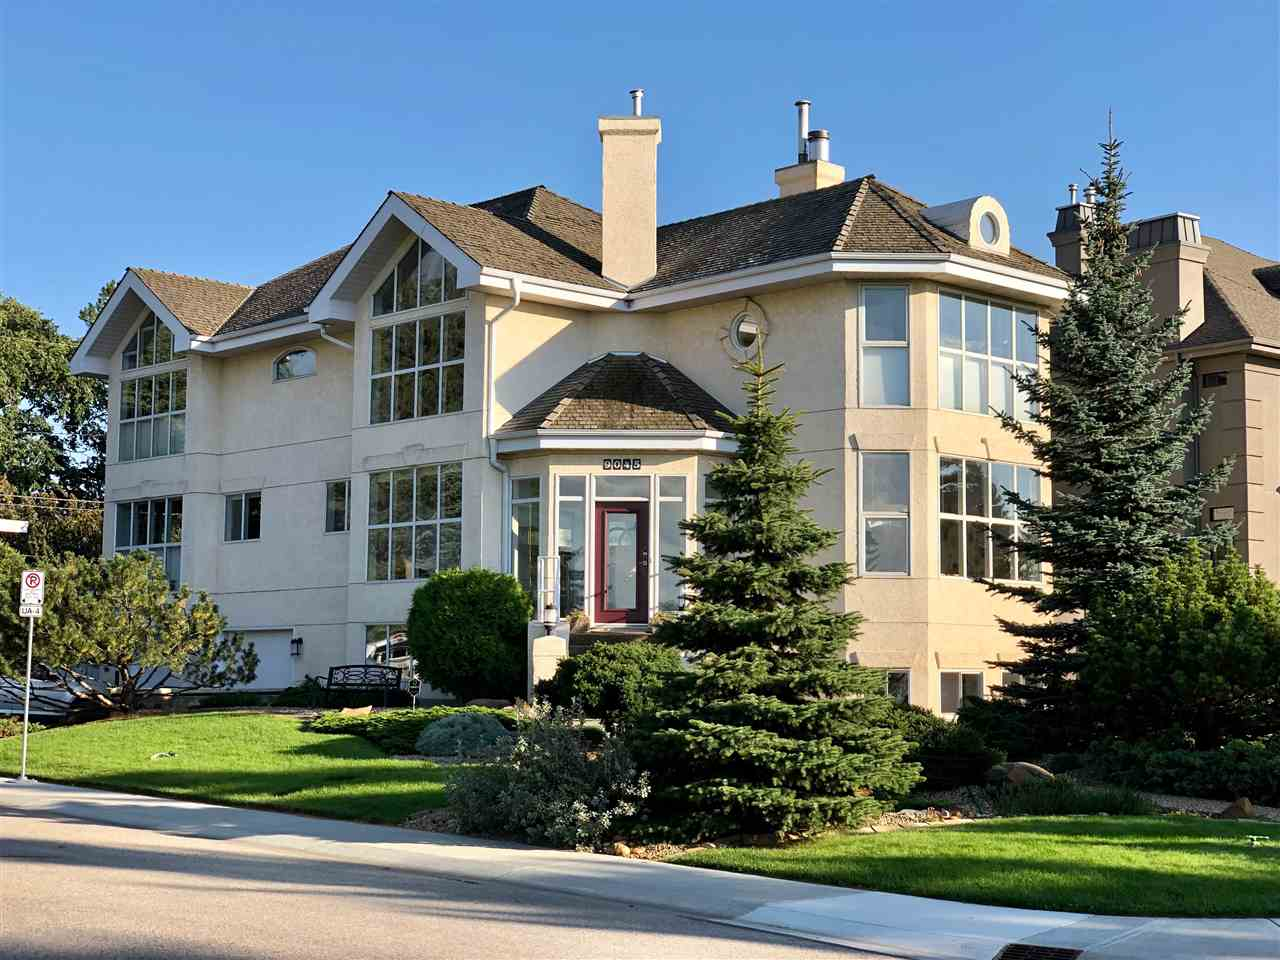 Beautifully designed two-story home located on Saskatchewan Dive in sought-after Windsor Park. Walk to the University of Alberta and hospitals. Fabulous views of the river valley and park reserve - lots of nature at your front door. Over 3,100 sq. feet above grade. There's a modernized gourmet's-delight kitchen with top-of-the-line appliances. A nook overlooks the spacious living room and formal dining room that are separated by a gas-lit, wood-burning fireplace. Stunning, curved staircase to upper level with three bedrooms and a flex room. Master bedroom has a gas fireplace. A glass curtain wall allows lots of natural light to permeate this home. There's an atrium, gorgeous landscaping, a hot tub on the Southeast deck, and an attached, heated, insulated, over-sized double garage with lots of storage.